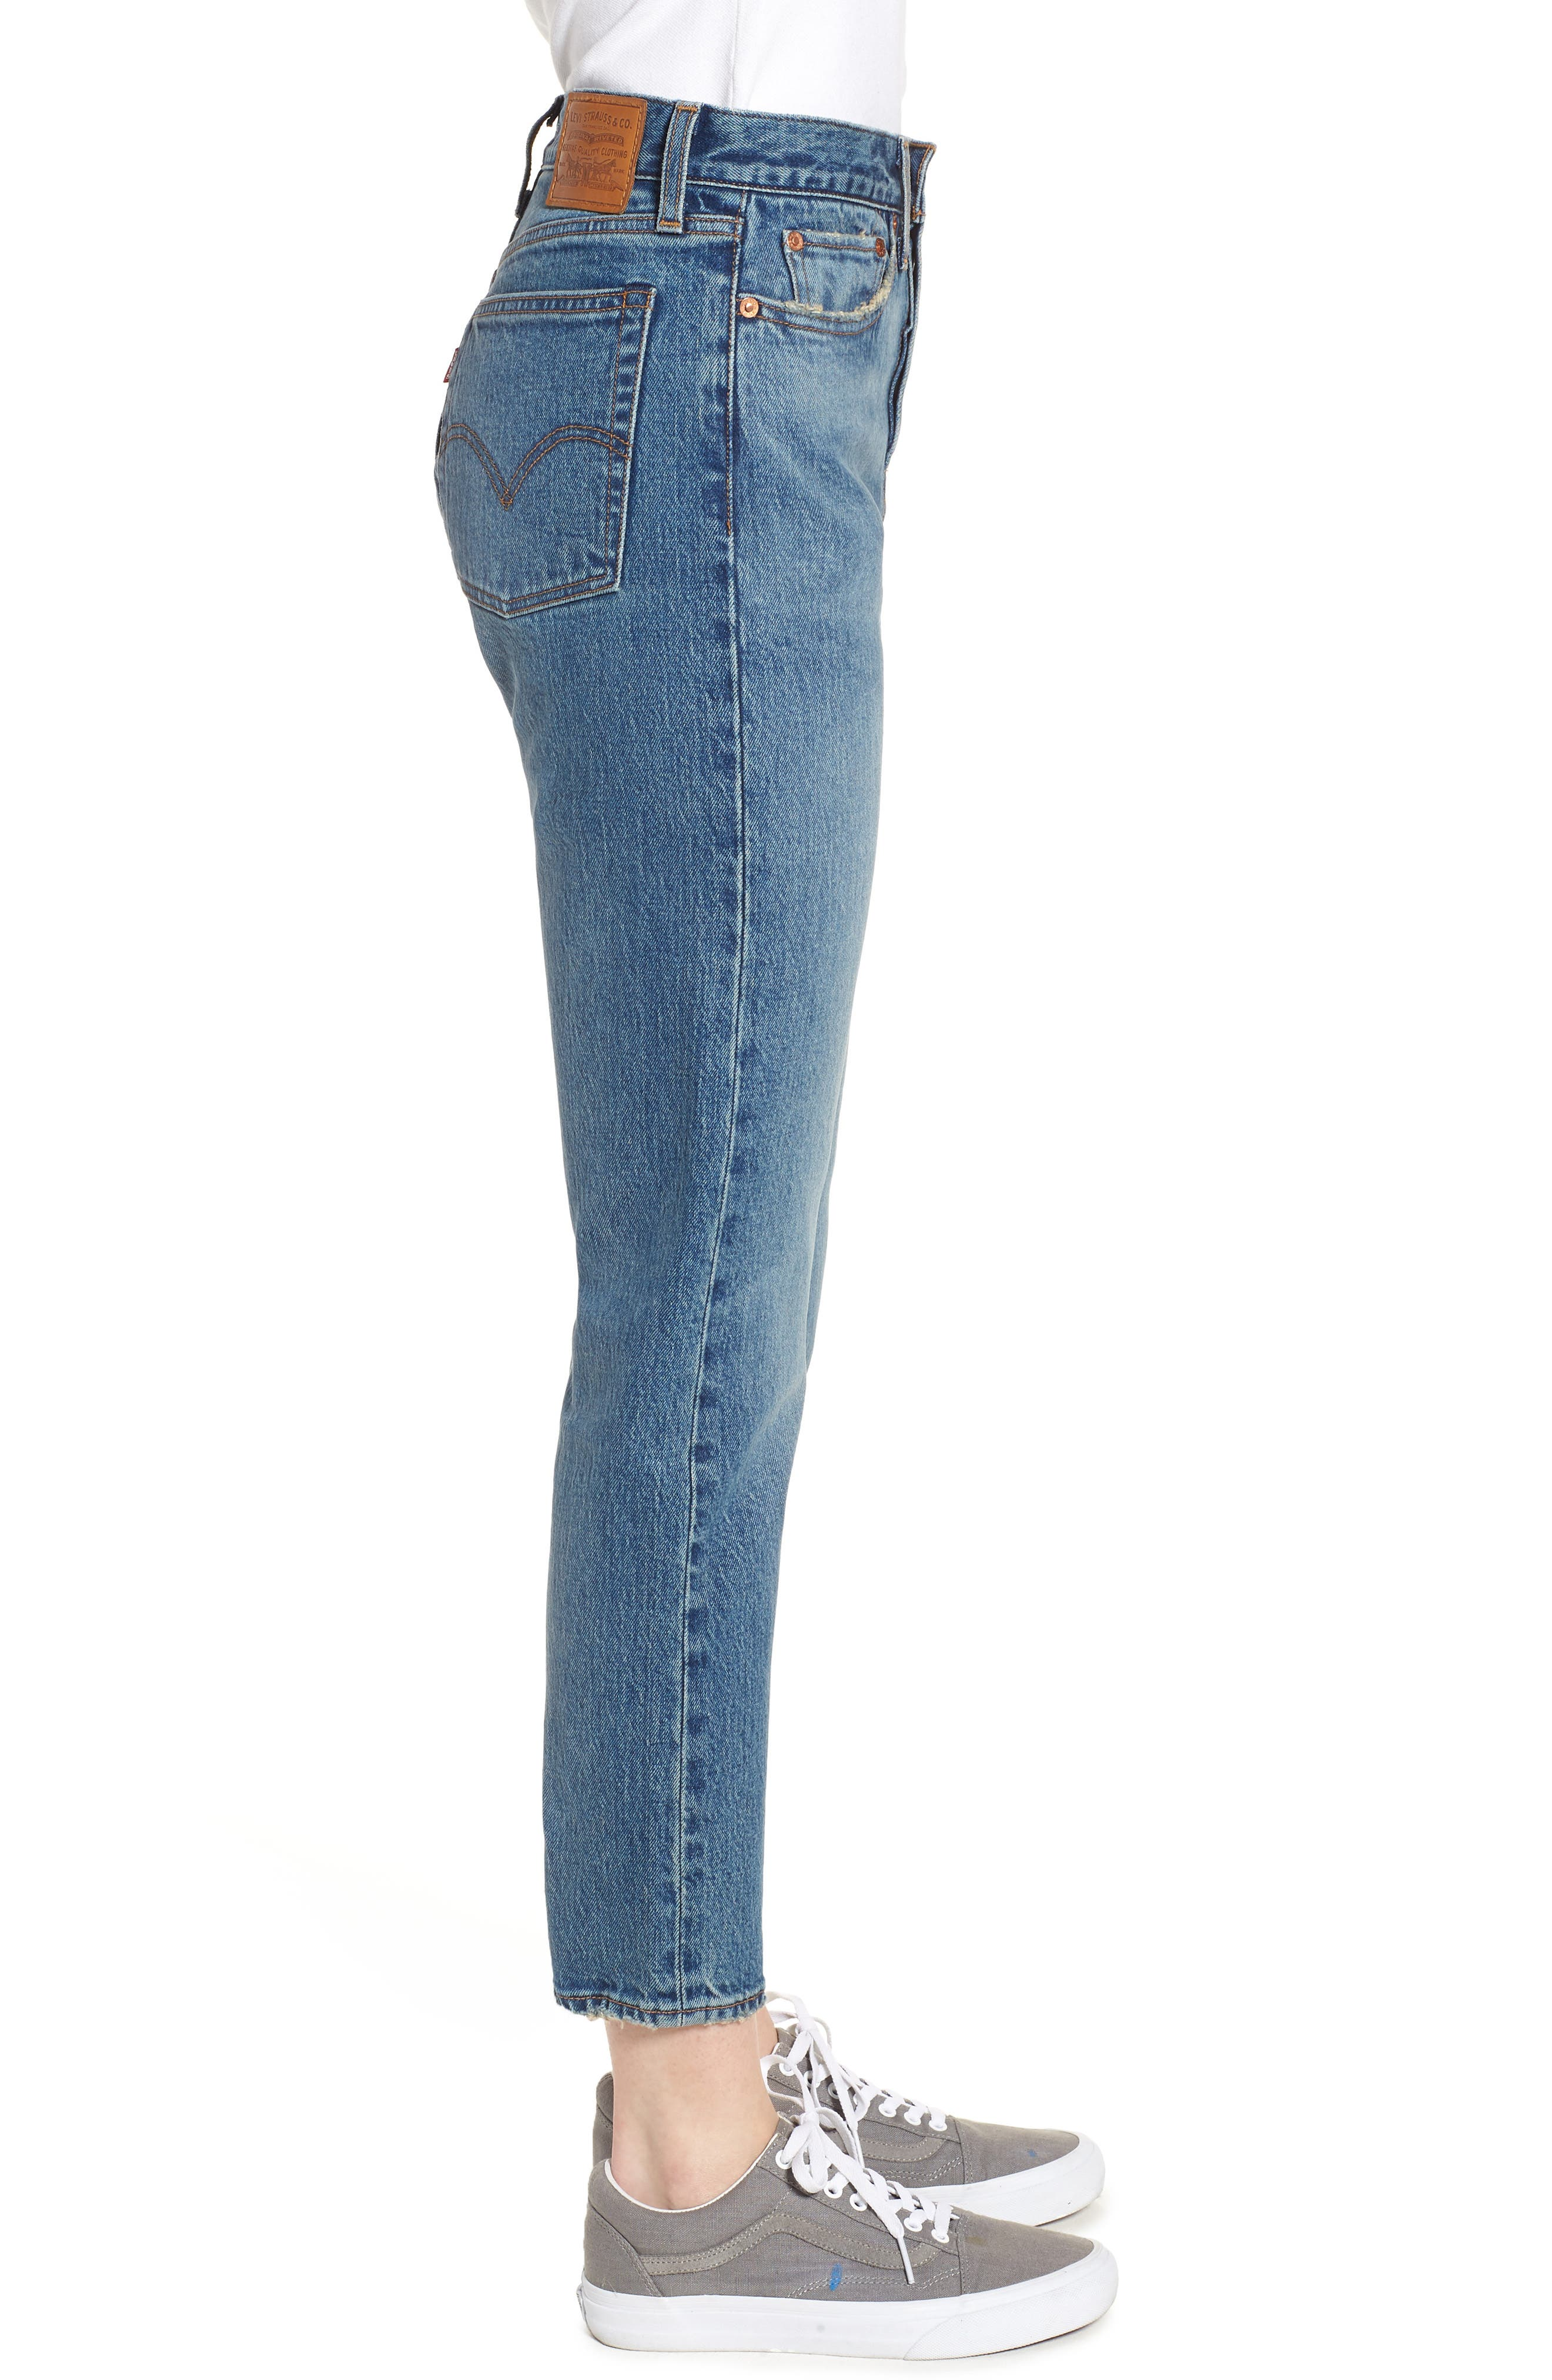 LEVI'S<SUP>®</SUP>, Wedgie Icon Fit High Waist Ankle Jeans, Alternate thumbnail 4, color, THESE DREAMS